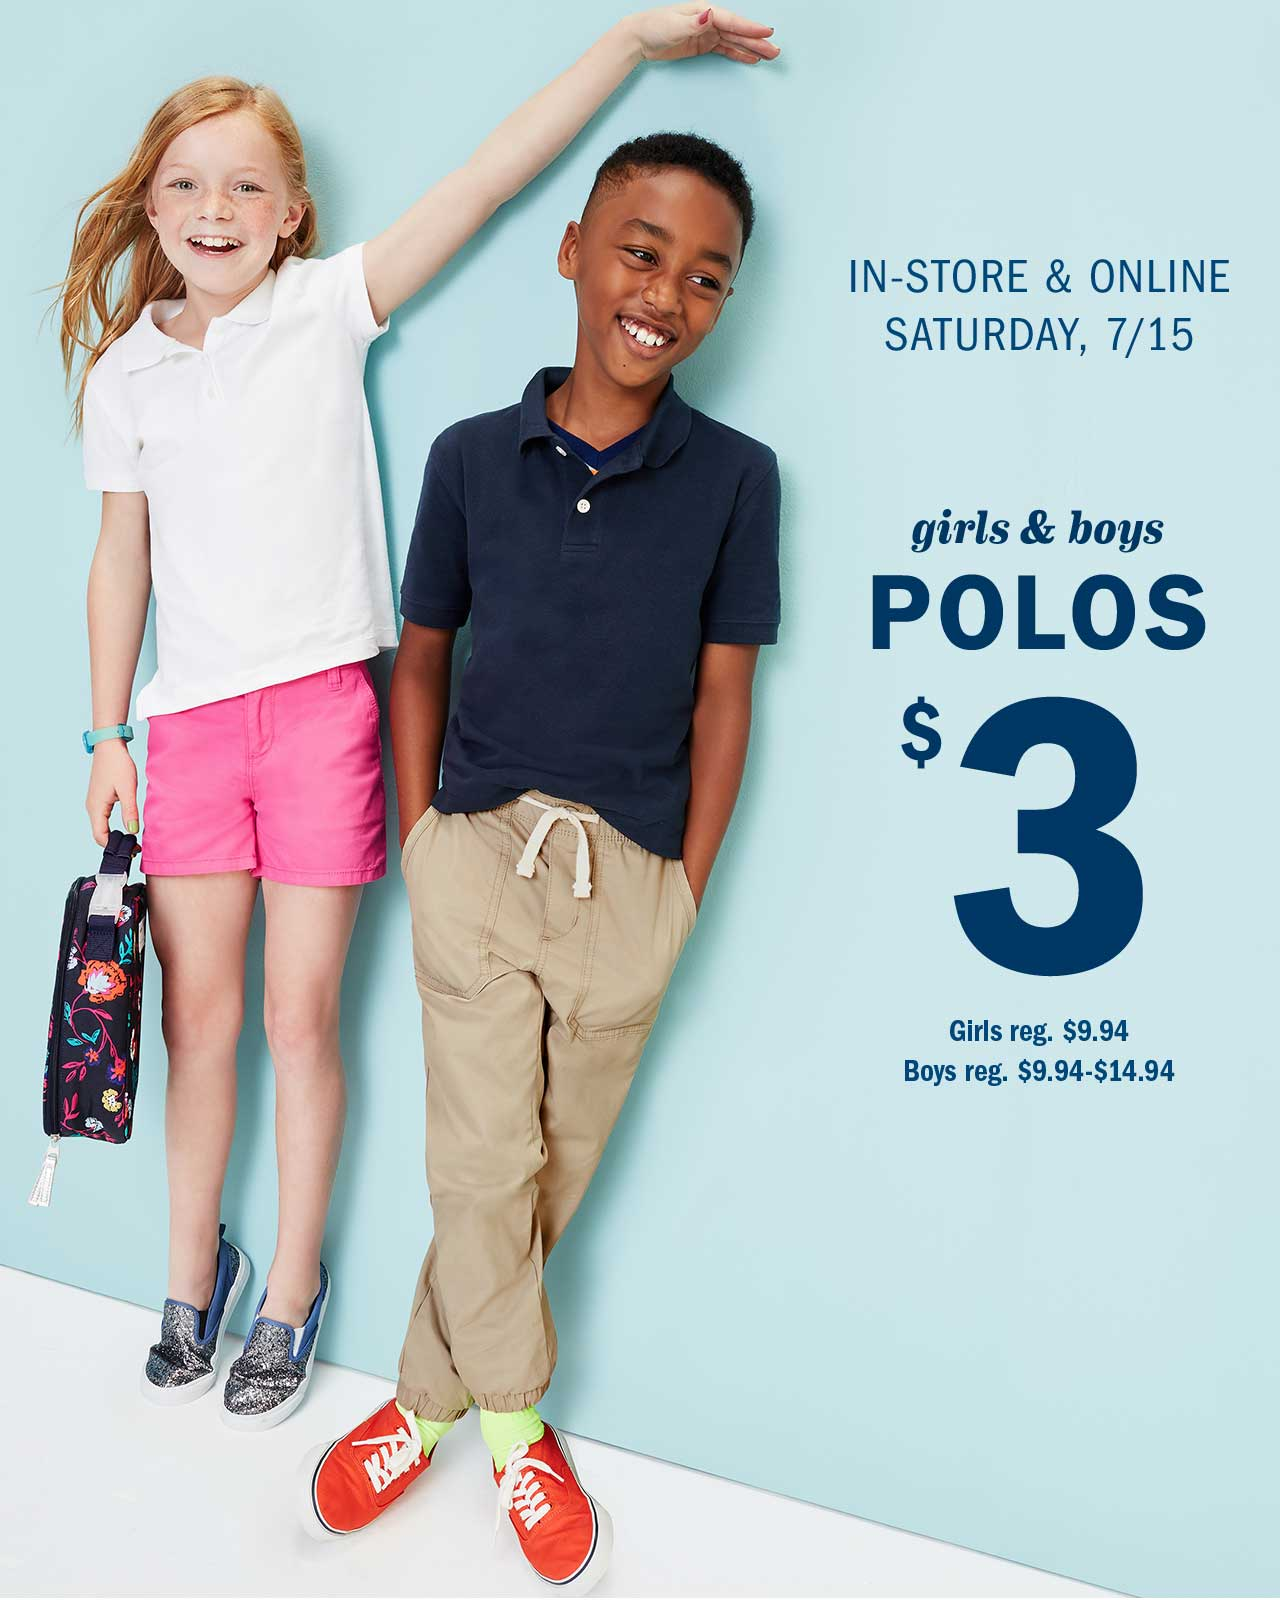 Old Navy: 😏 Announcement: We're offering you $3 POLOS! | Milled